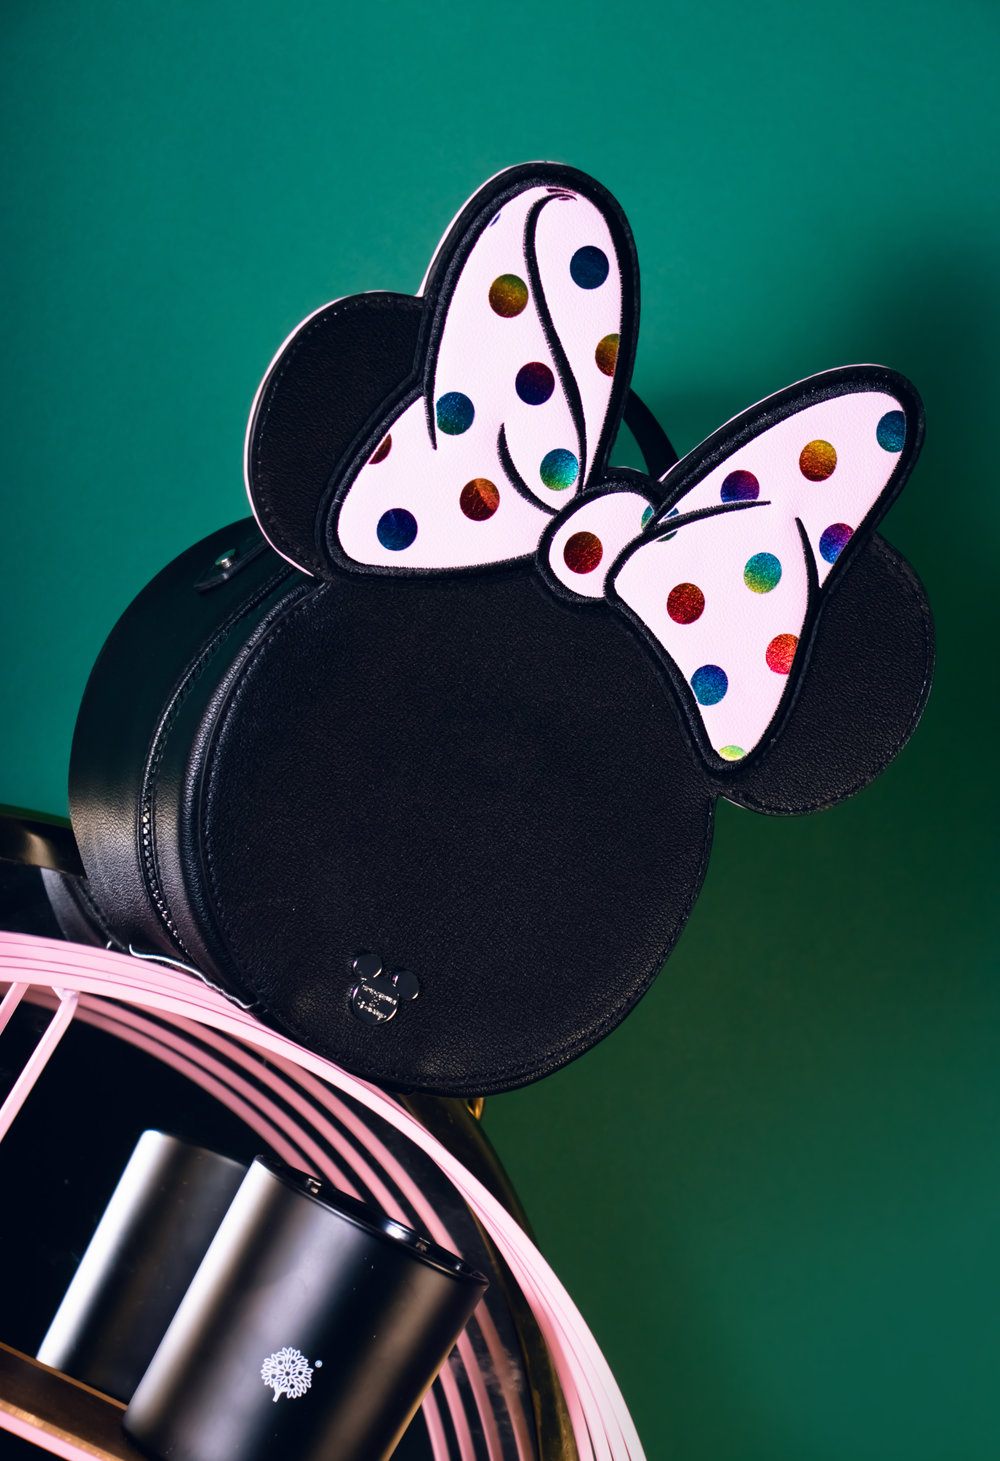 Spectrum minnie mouse vanity case.jpg